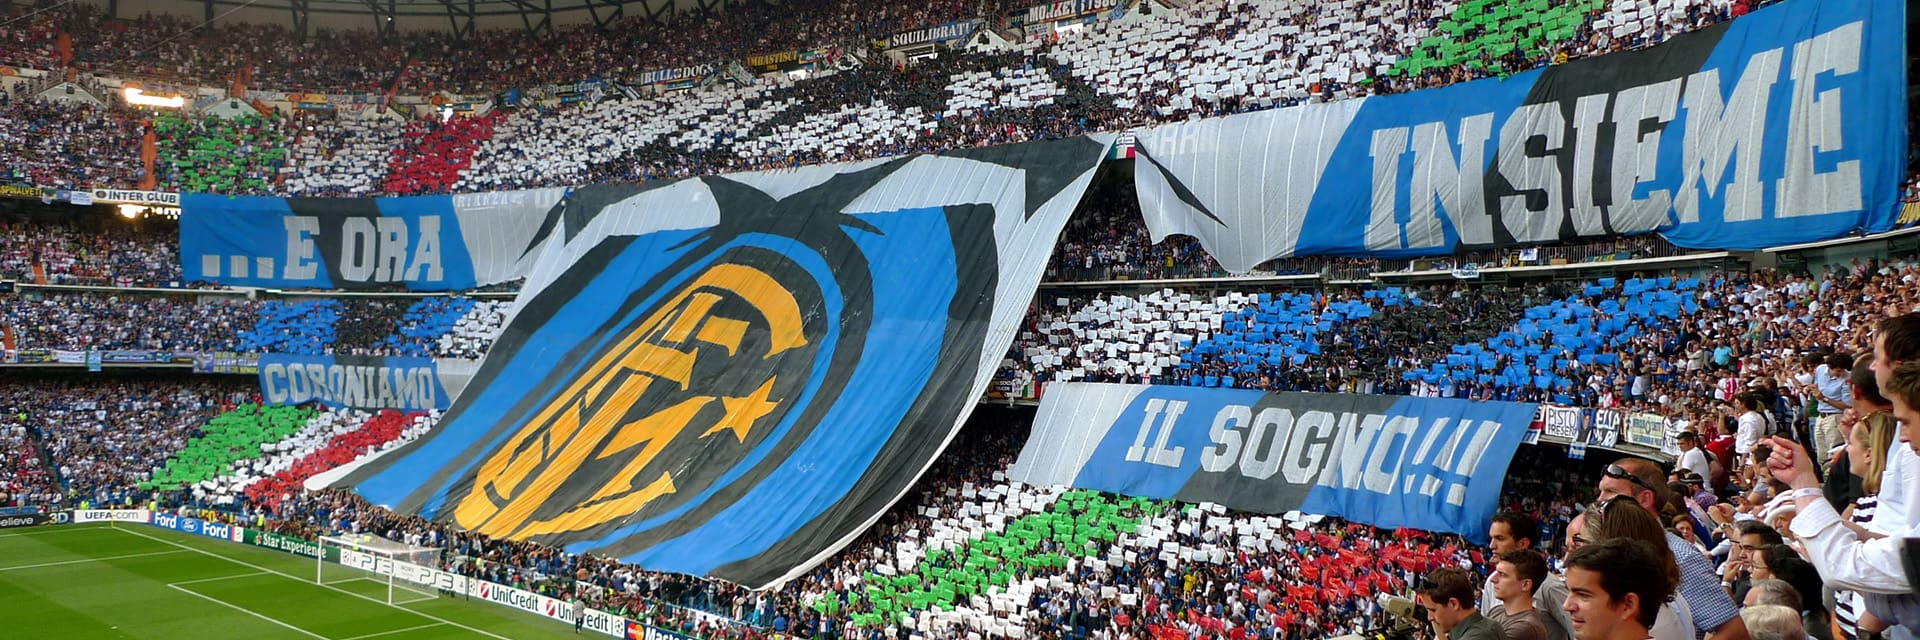 Inter Milan - Chievo Verona, 1 meiom 21:00